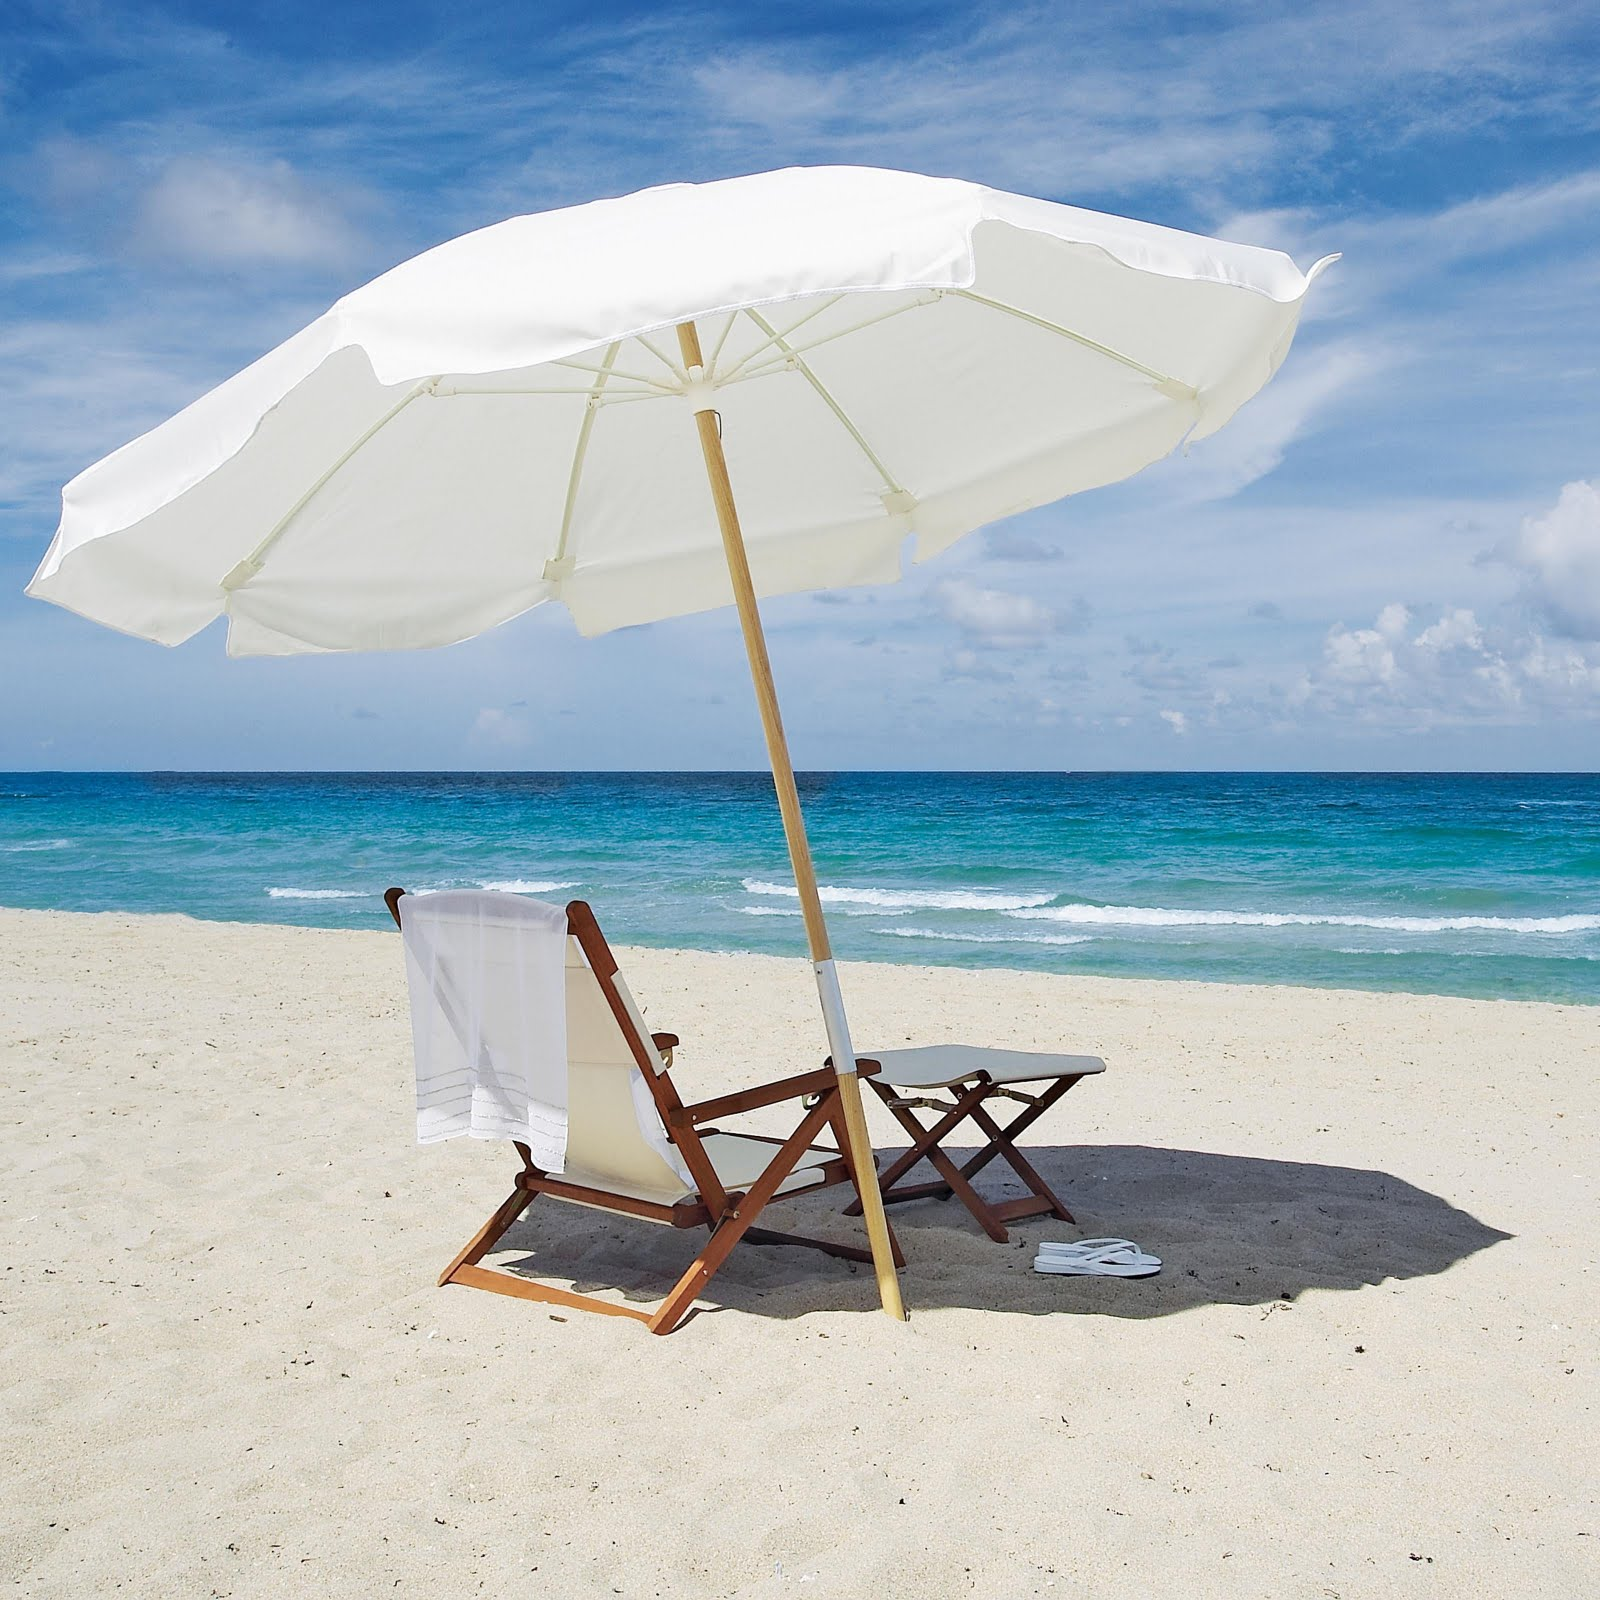 For Beach Chairs Umbrellas Online Compare Prices Read